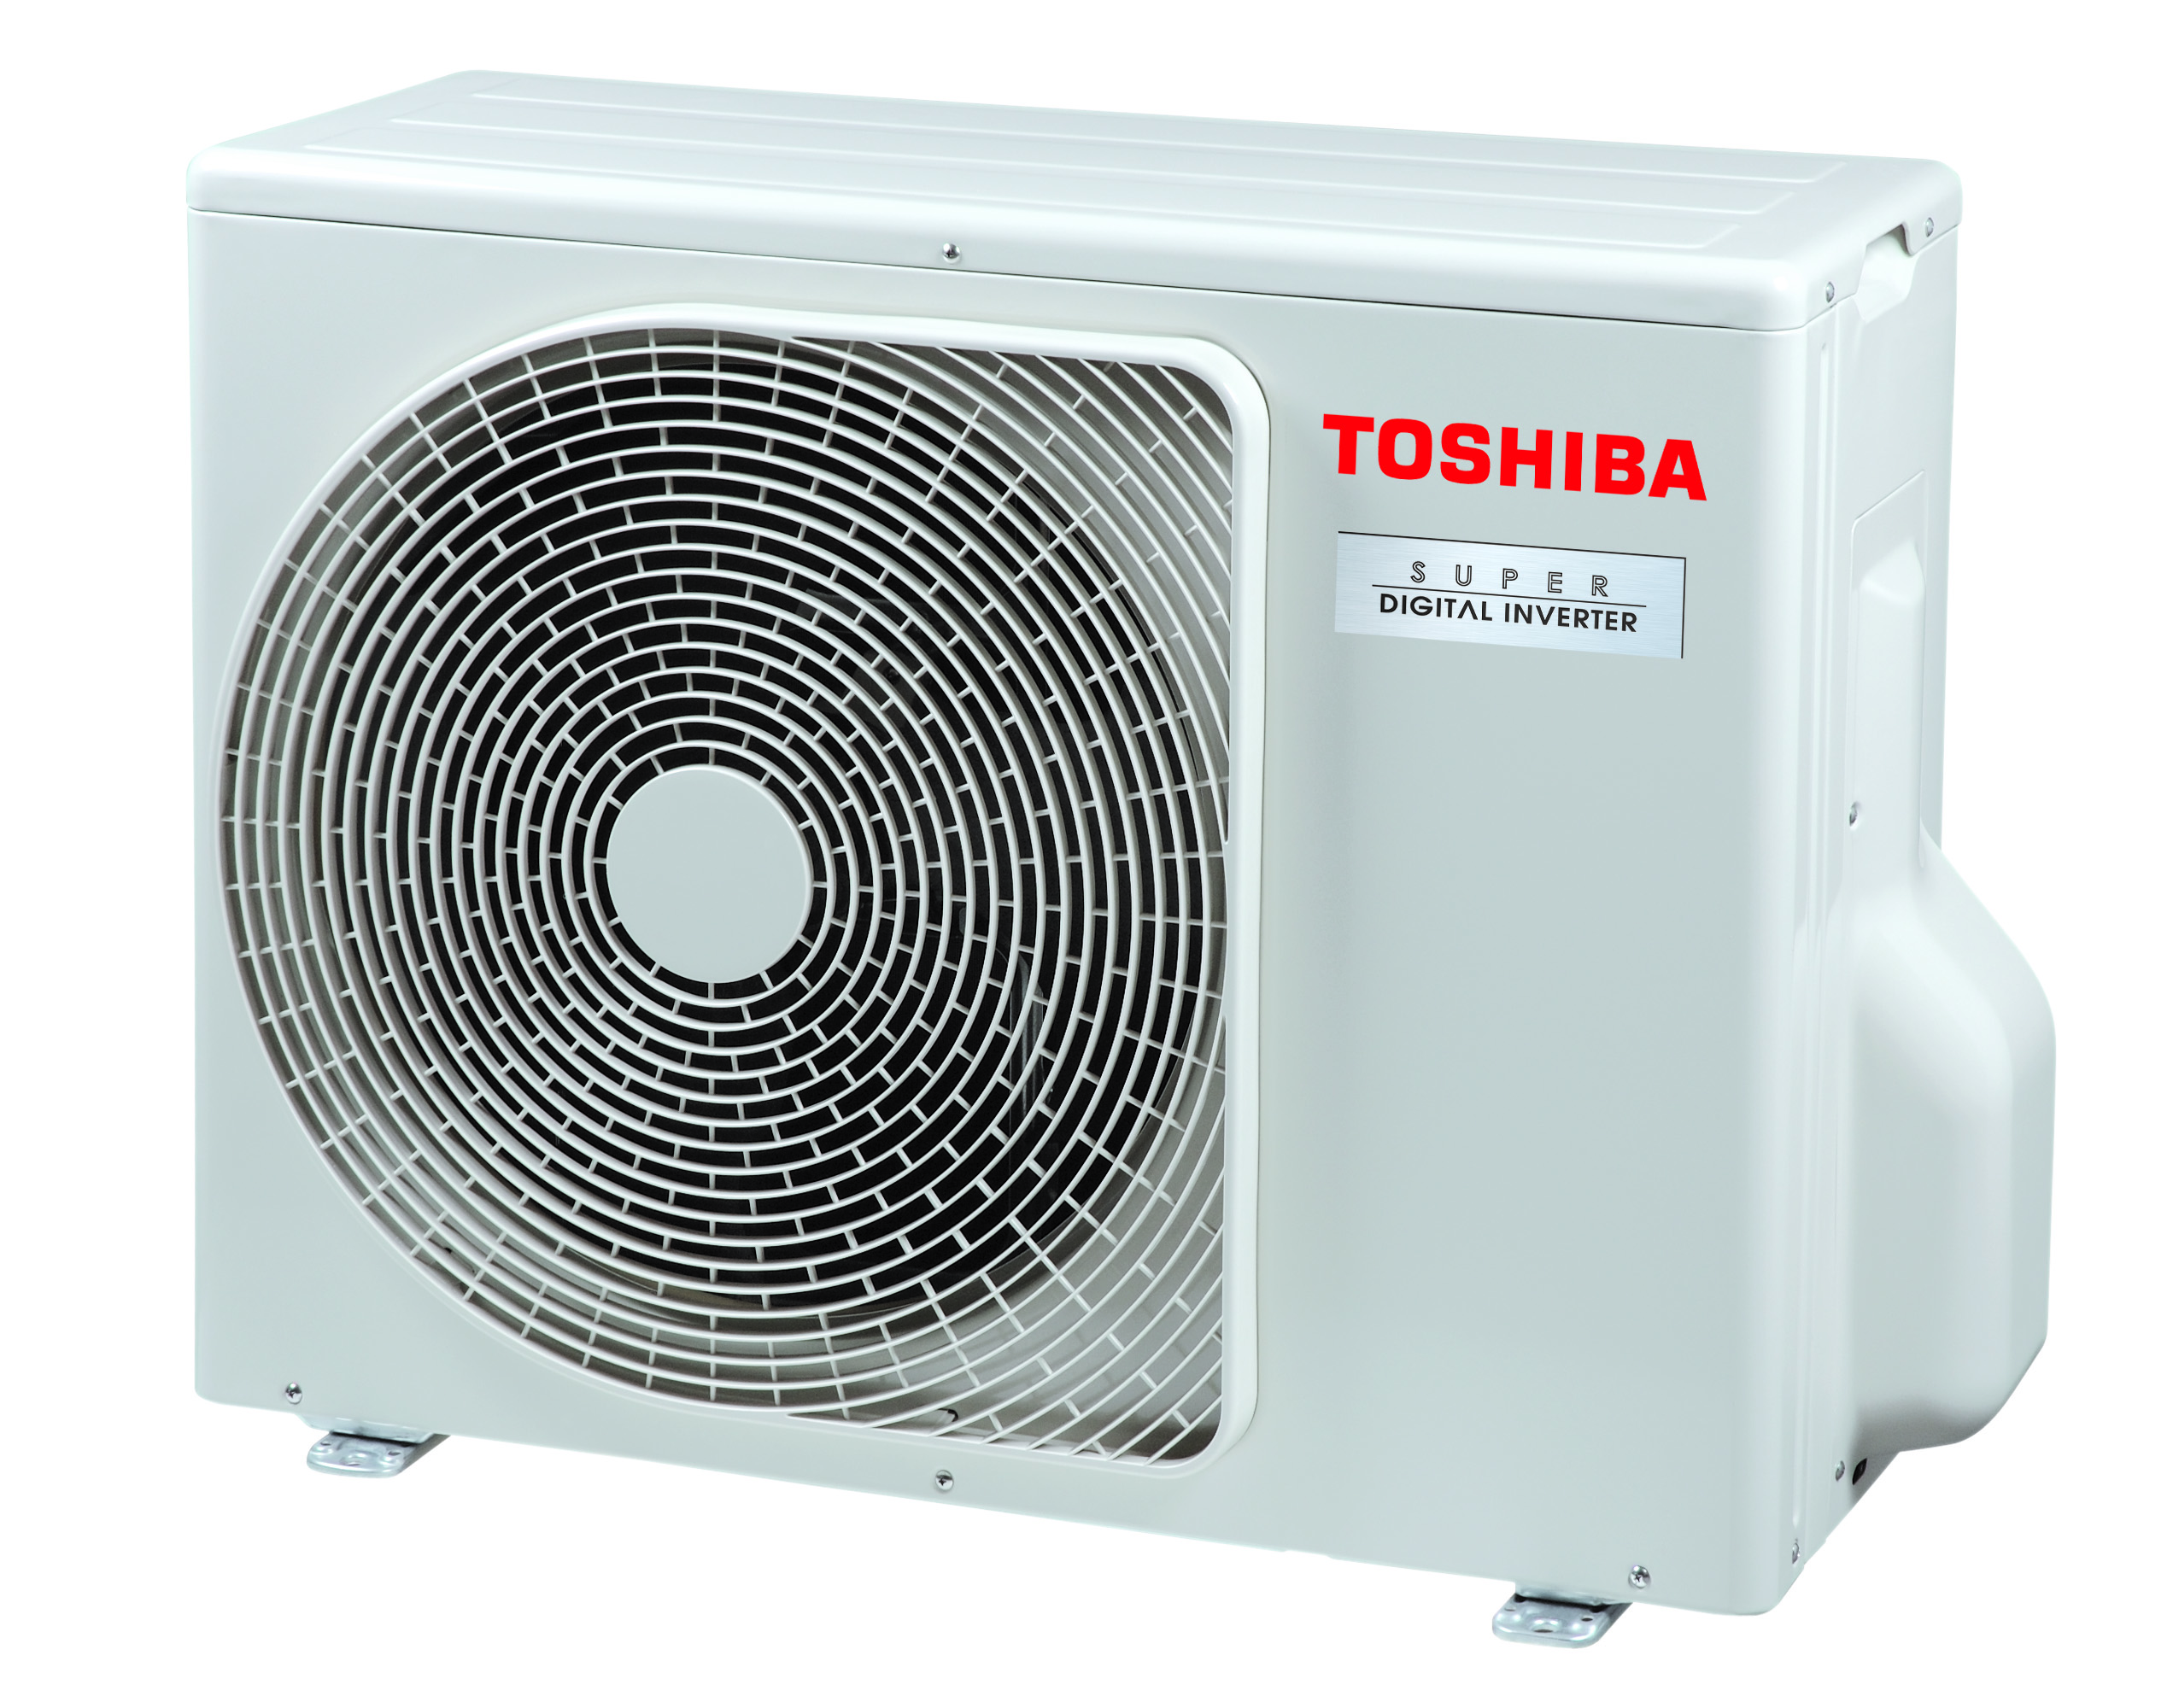 https://www.toshiba-aircon.co.uk/wp-content/uploads/2018/05/1.-2HP-R32-SDI.jpg